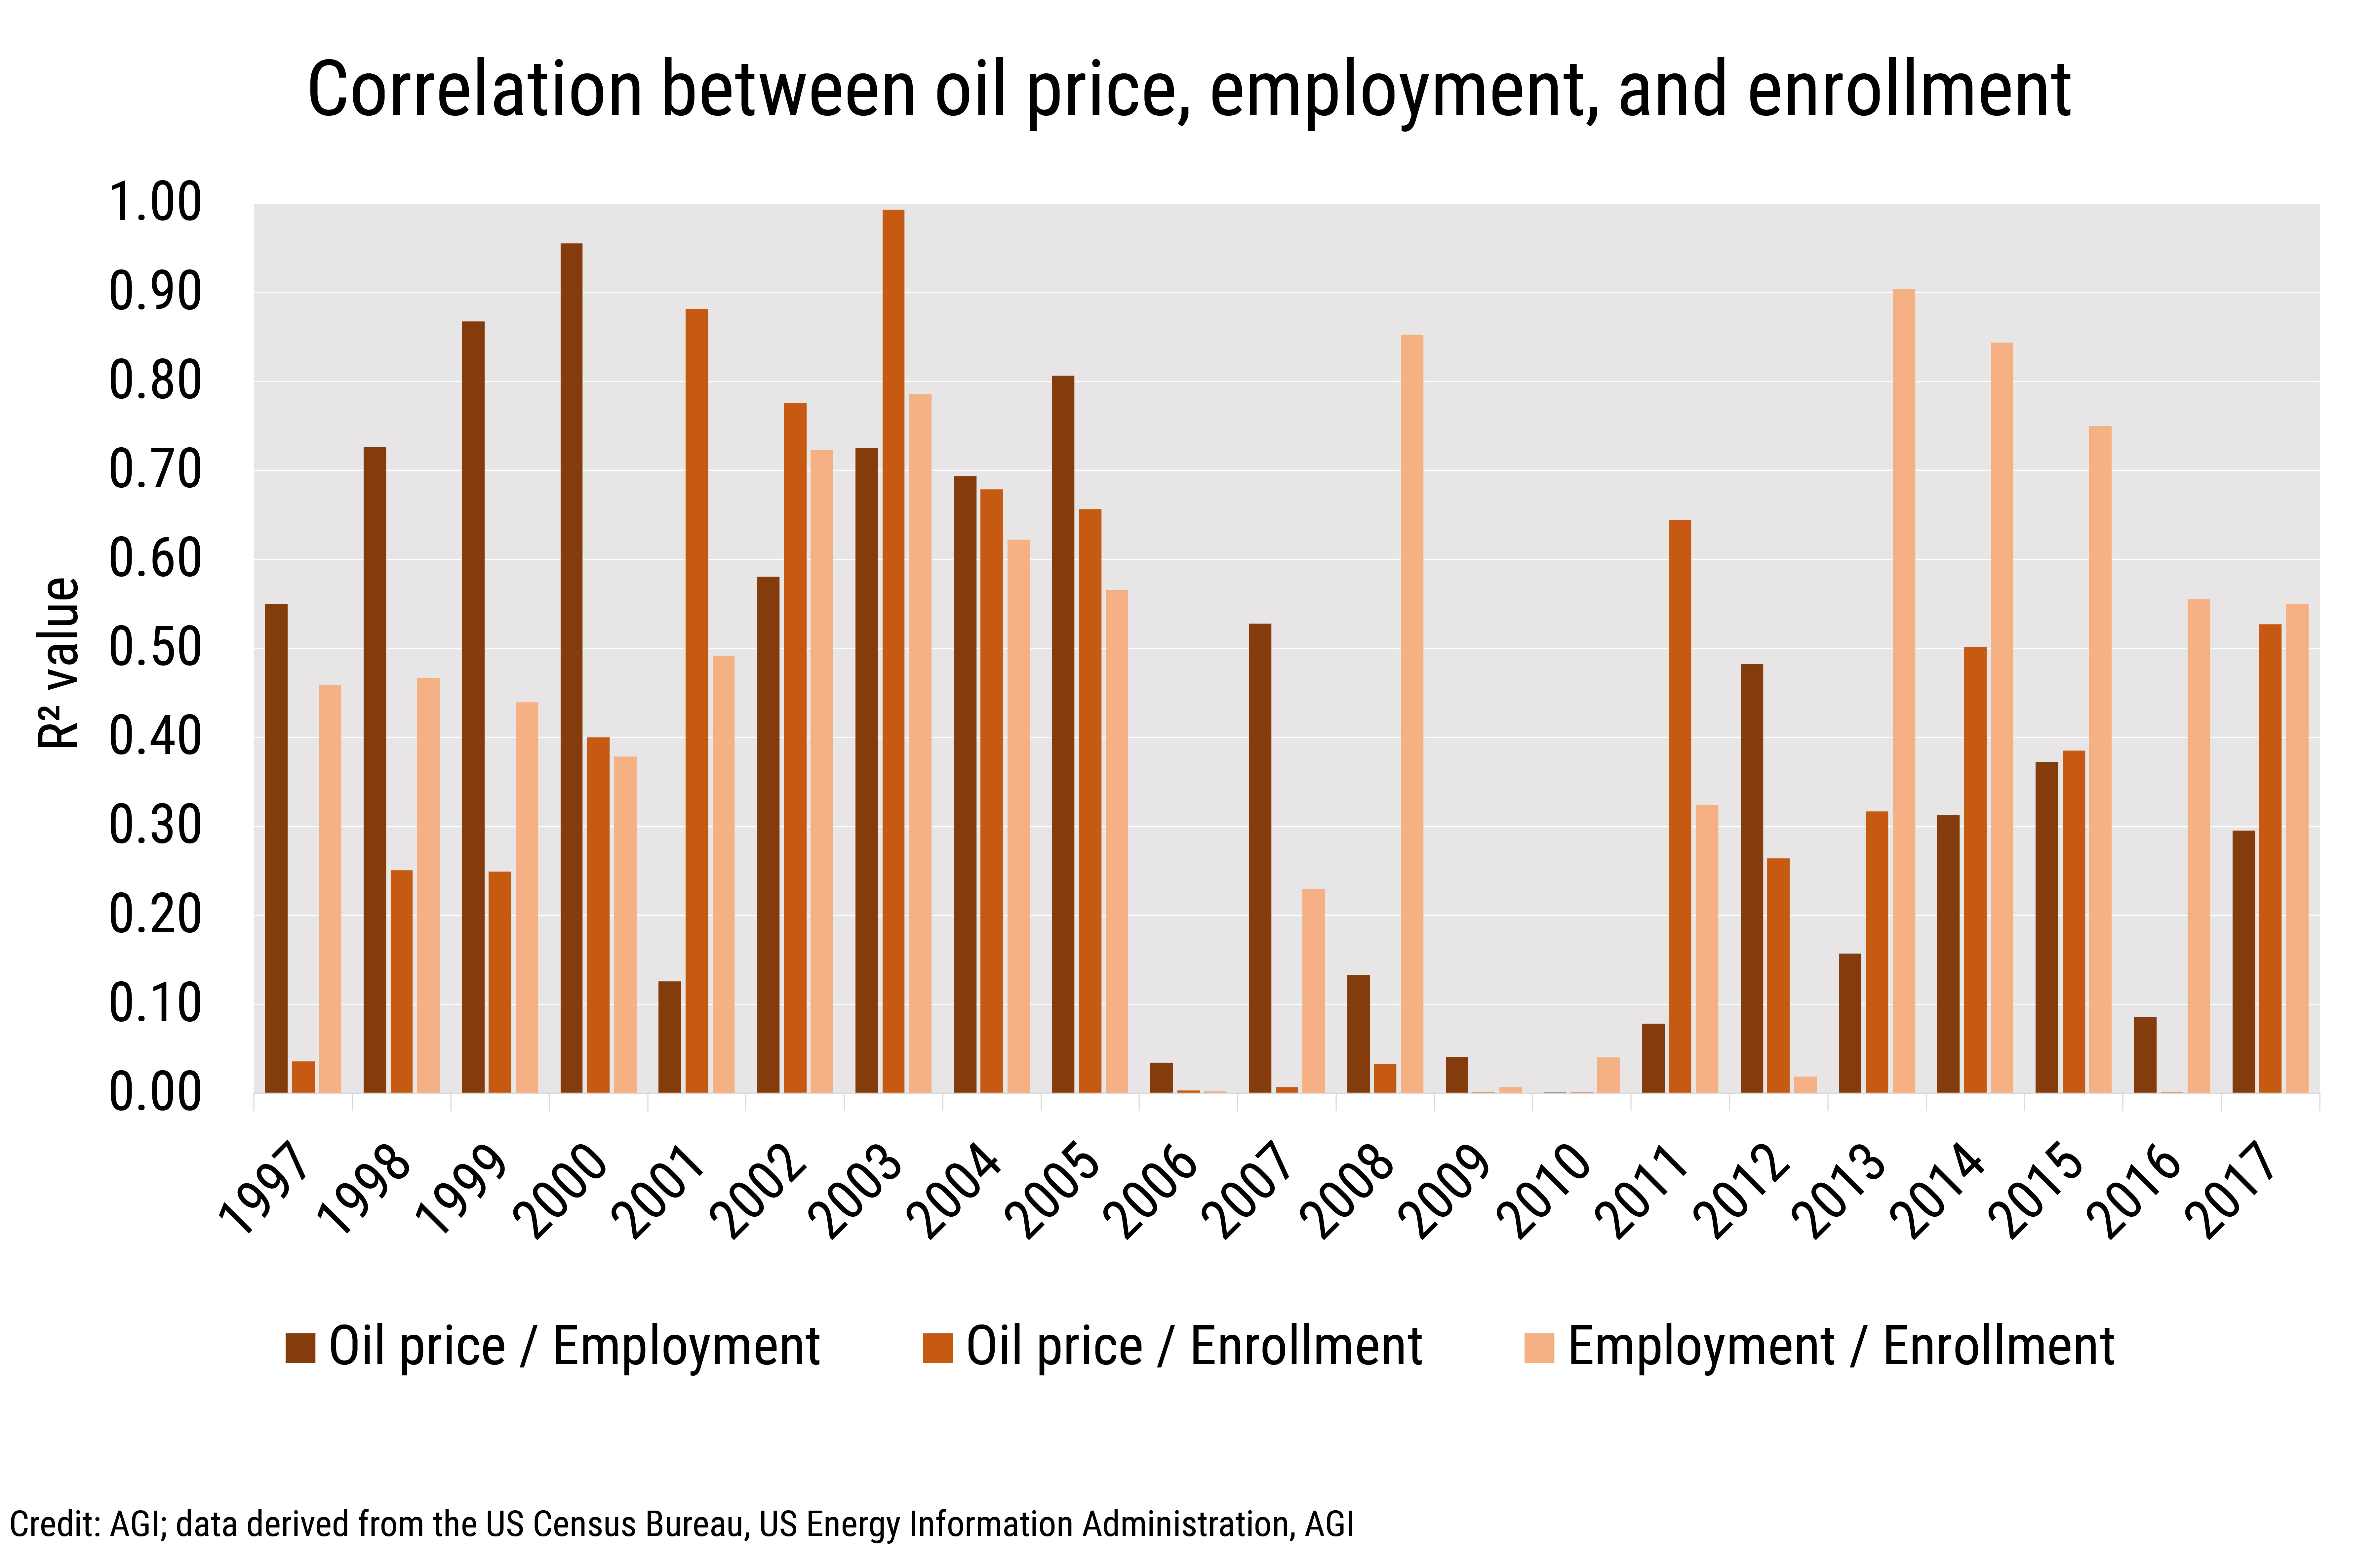 Data Brief 2020-005 chart 01: Correlation between oil price, employment and enrollment (credit: AGI; data derived from the US Census Bureau, EIA, AGI)